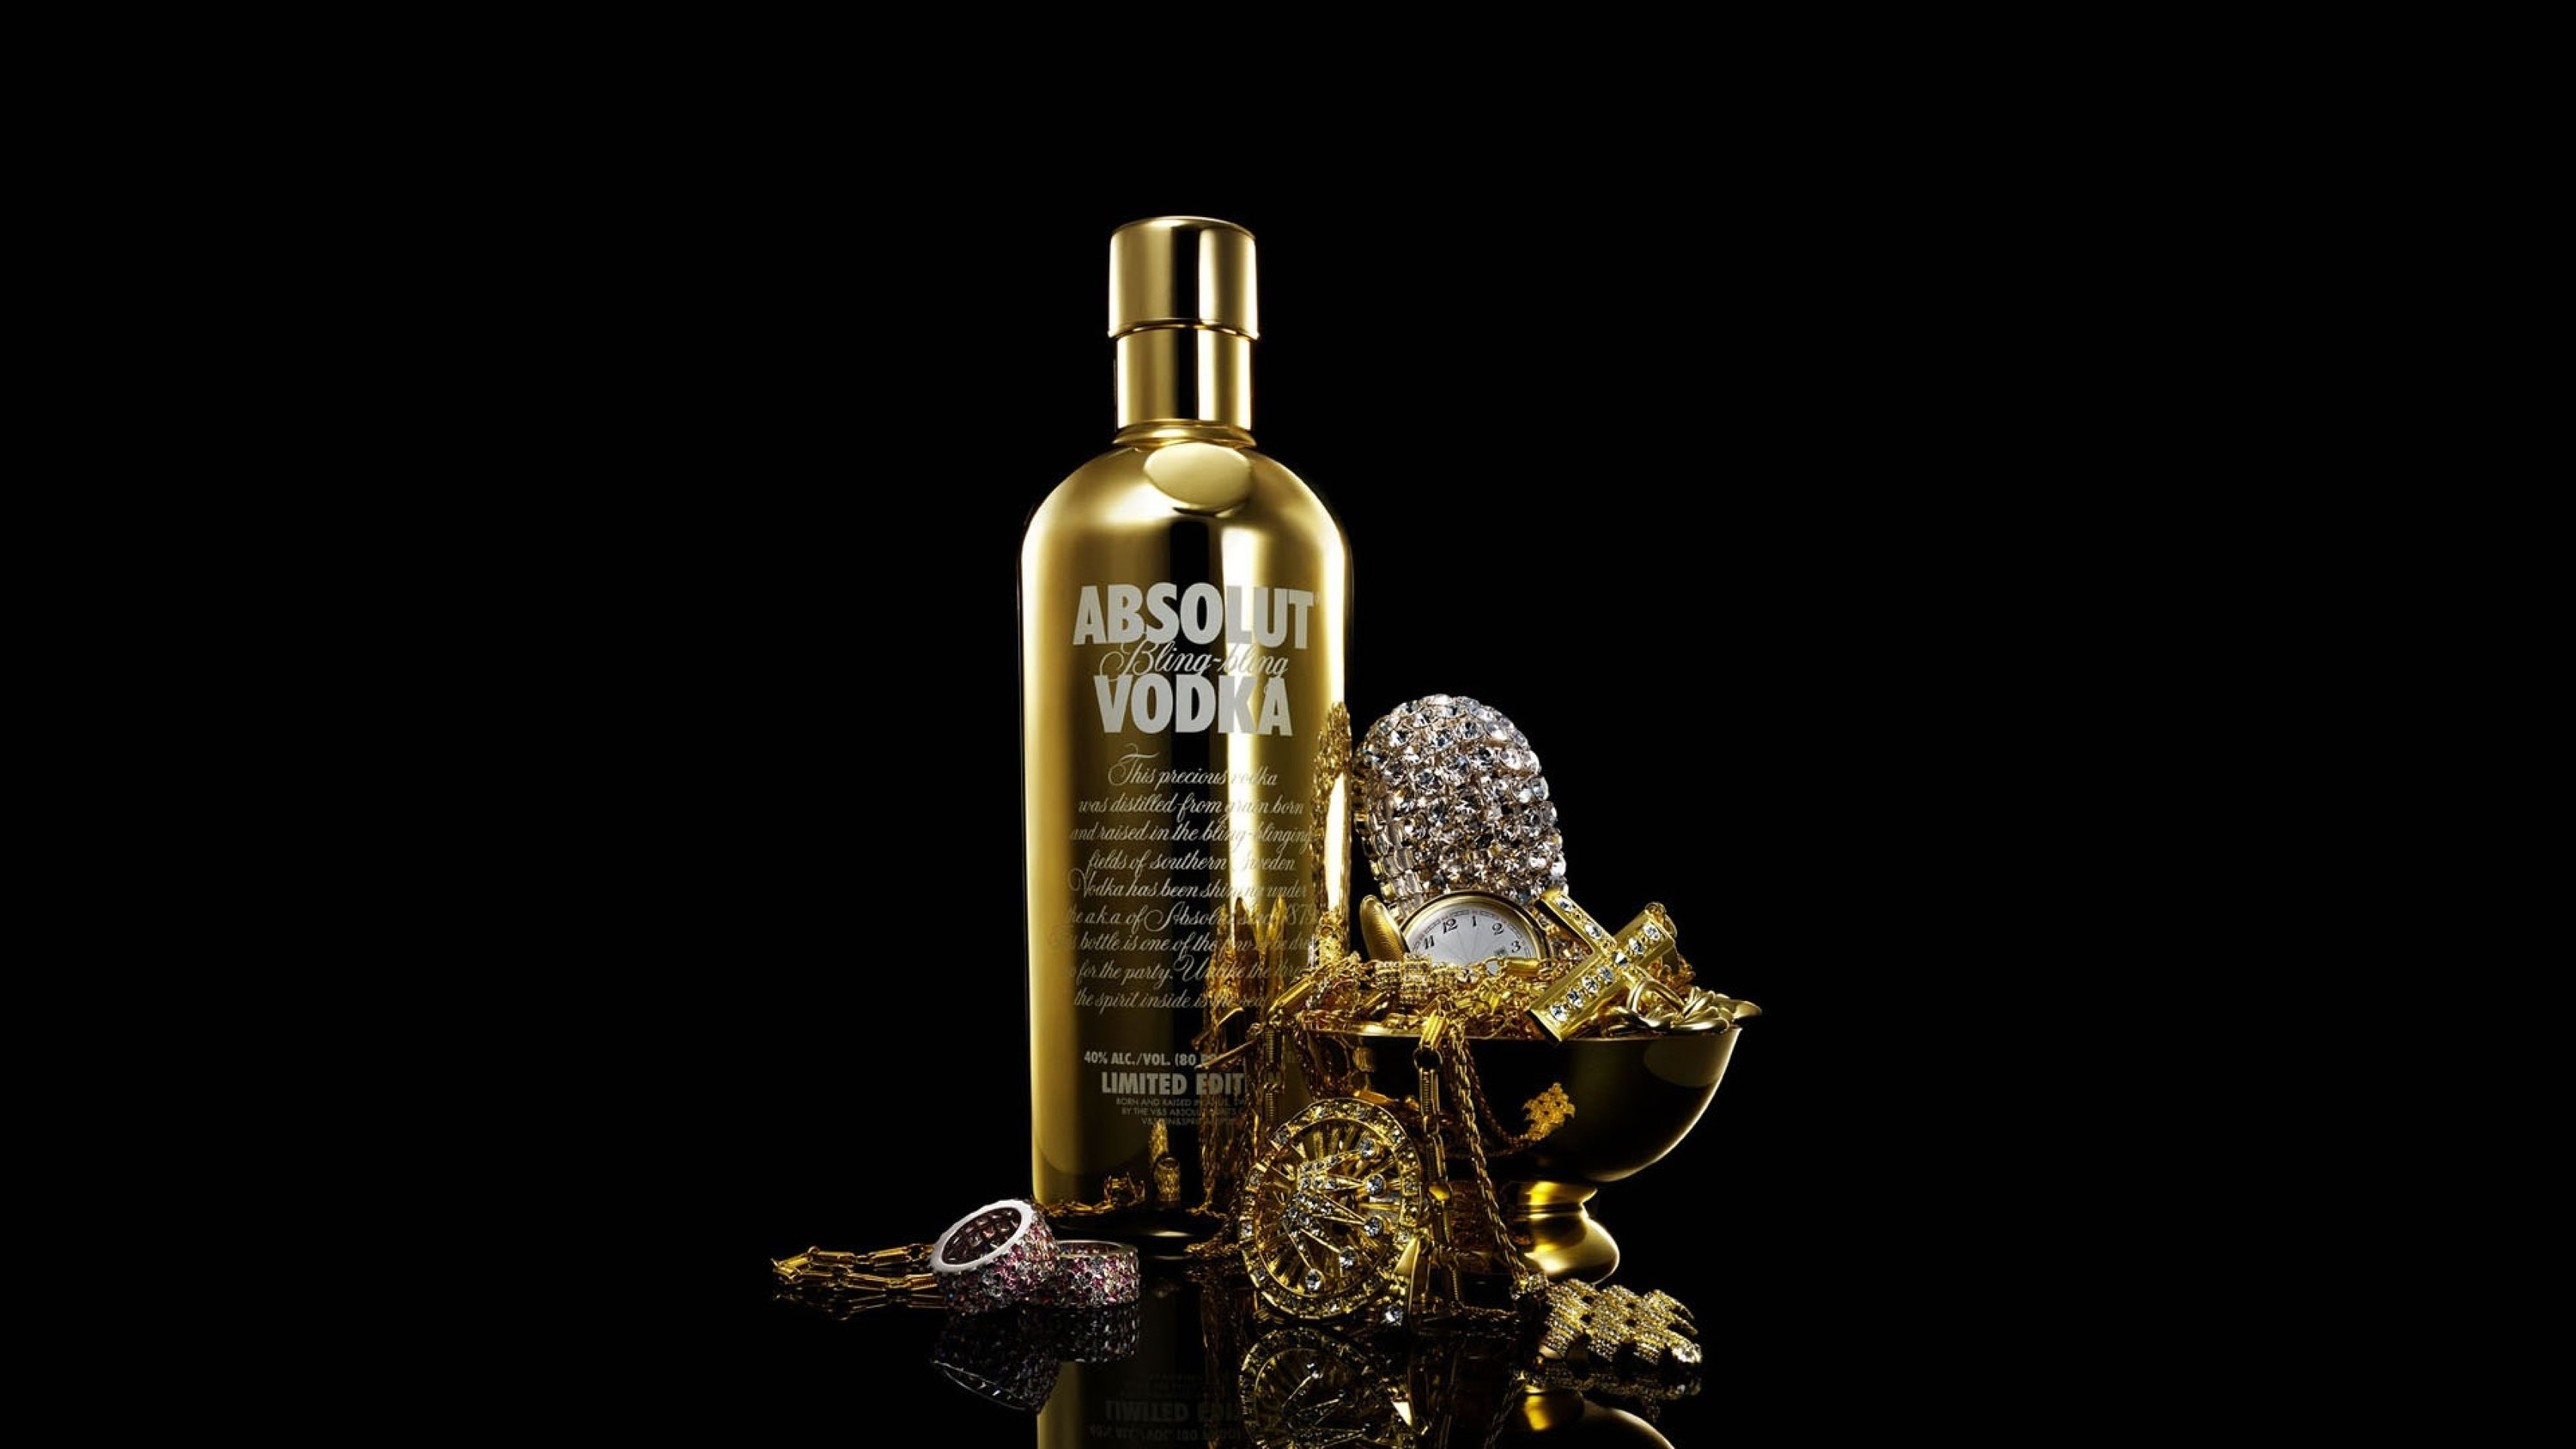 Free absolute_vodka_bottle_gold_drink_16517_3840x2160.jpg phone wallpaper by witch24